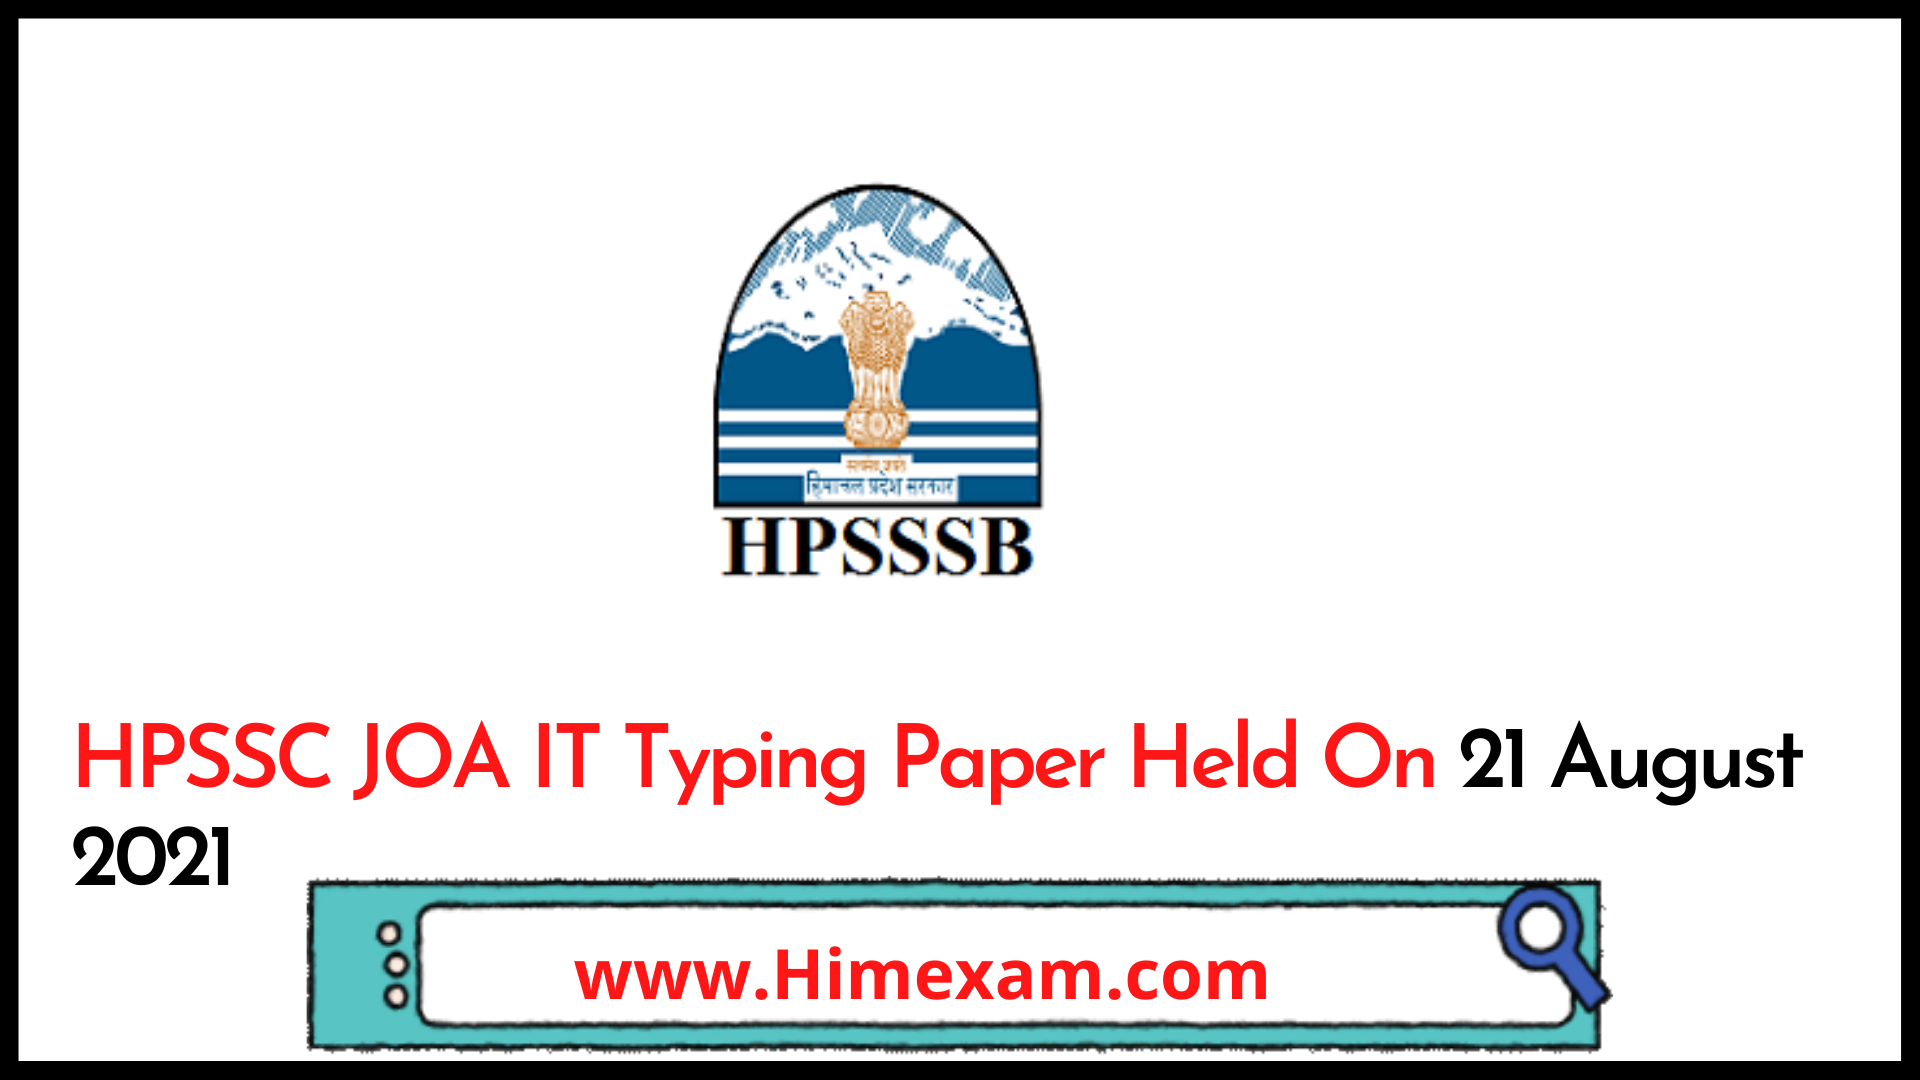 HPSSC JOA IT Typing Paper Held On 21 August 2021